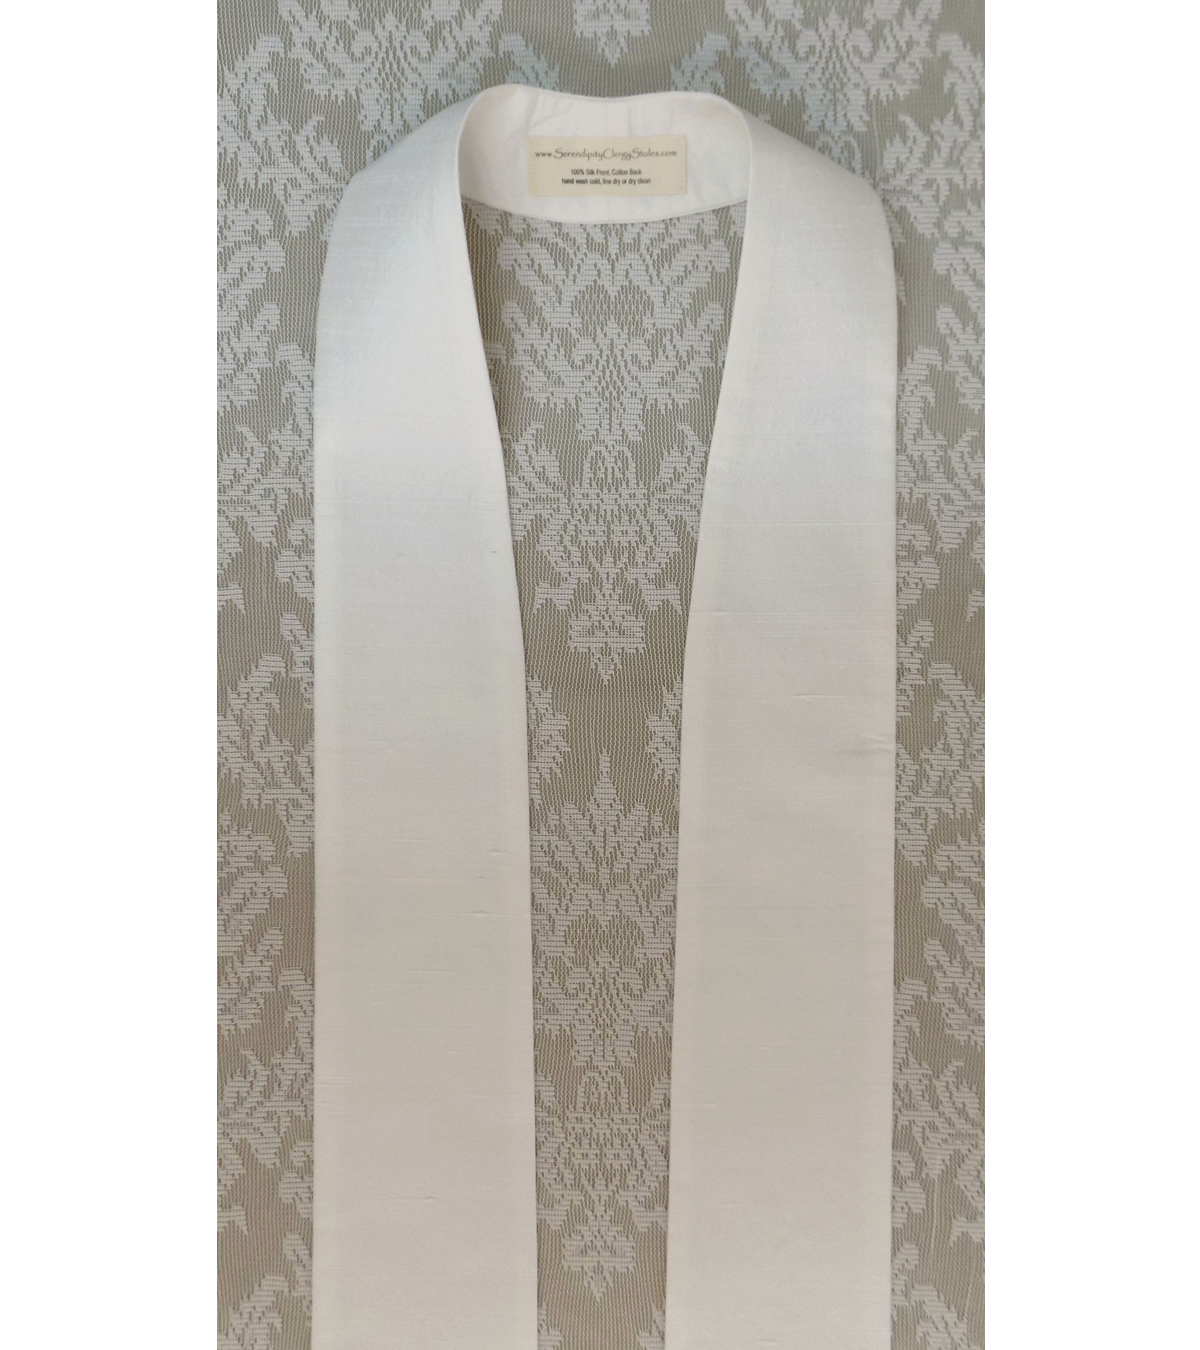 READY TO SHIP! Simply Silk: Plain White Clergy Stole - Keep it Simple, or Add Your Own Design!